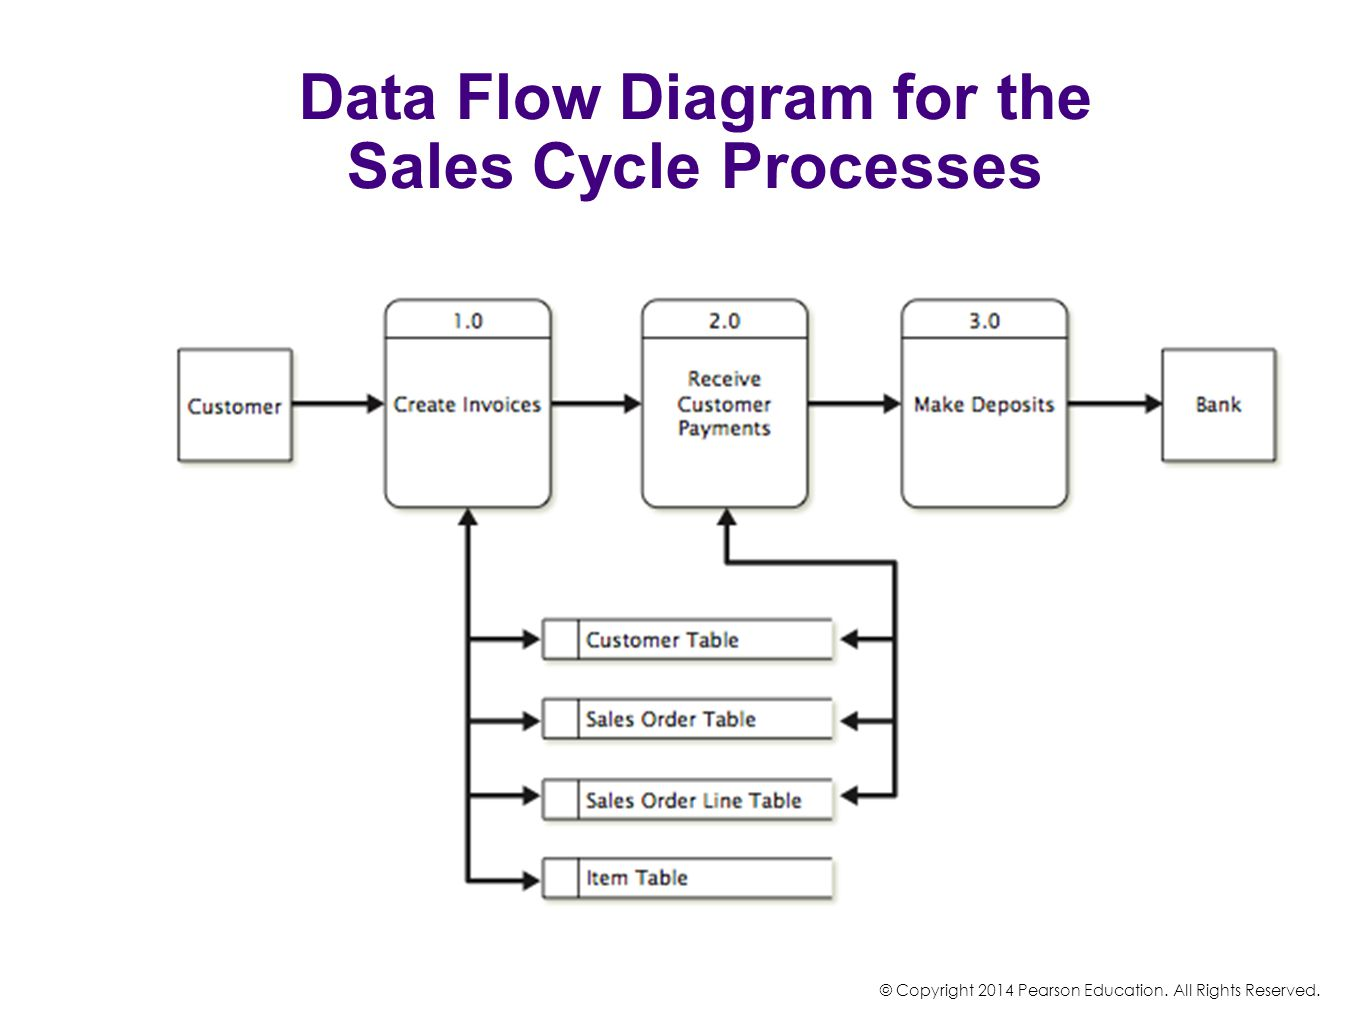 Data Flow Diagram for the